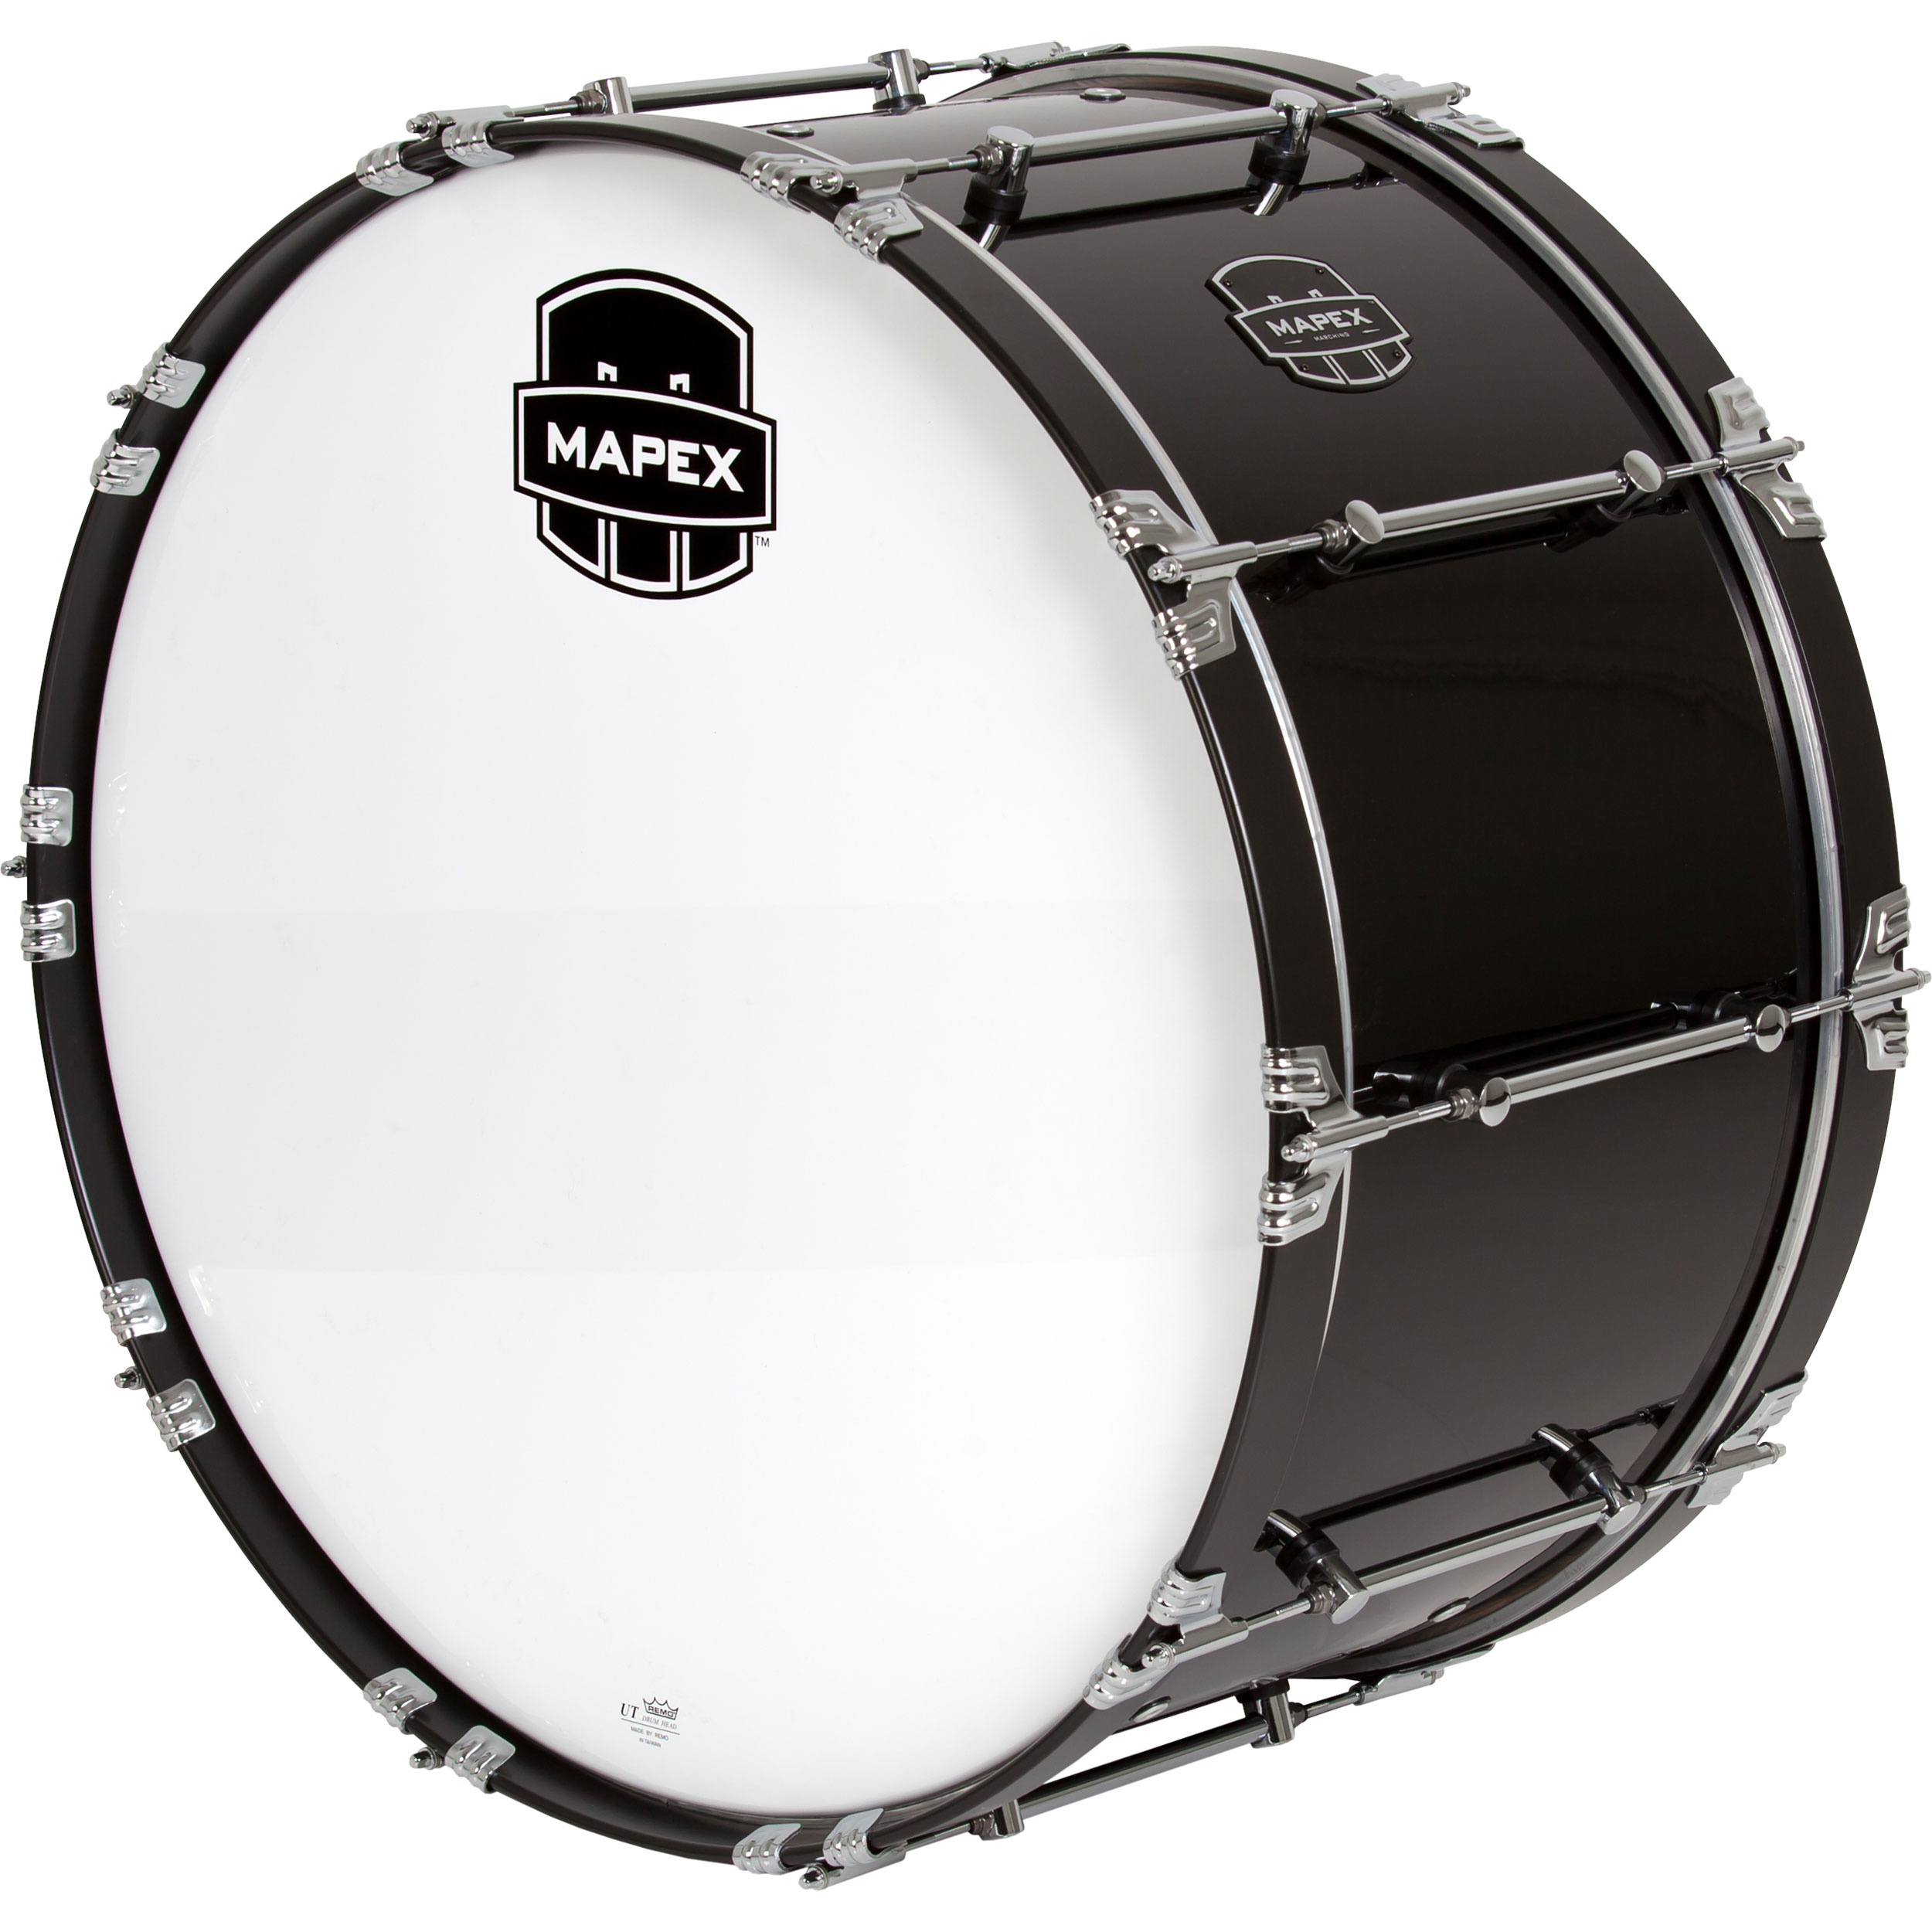 "Mapex 30"" x 14"" Quantum Mark II Marching Bass Drum in Gloss Black"